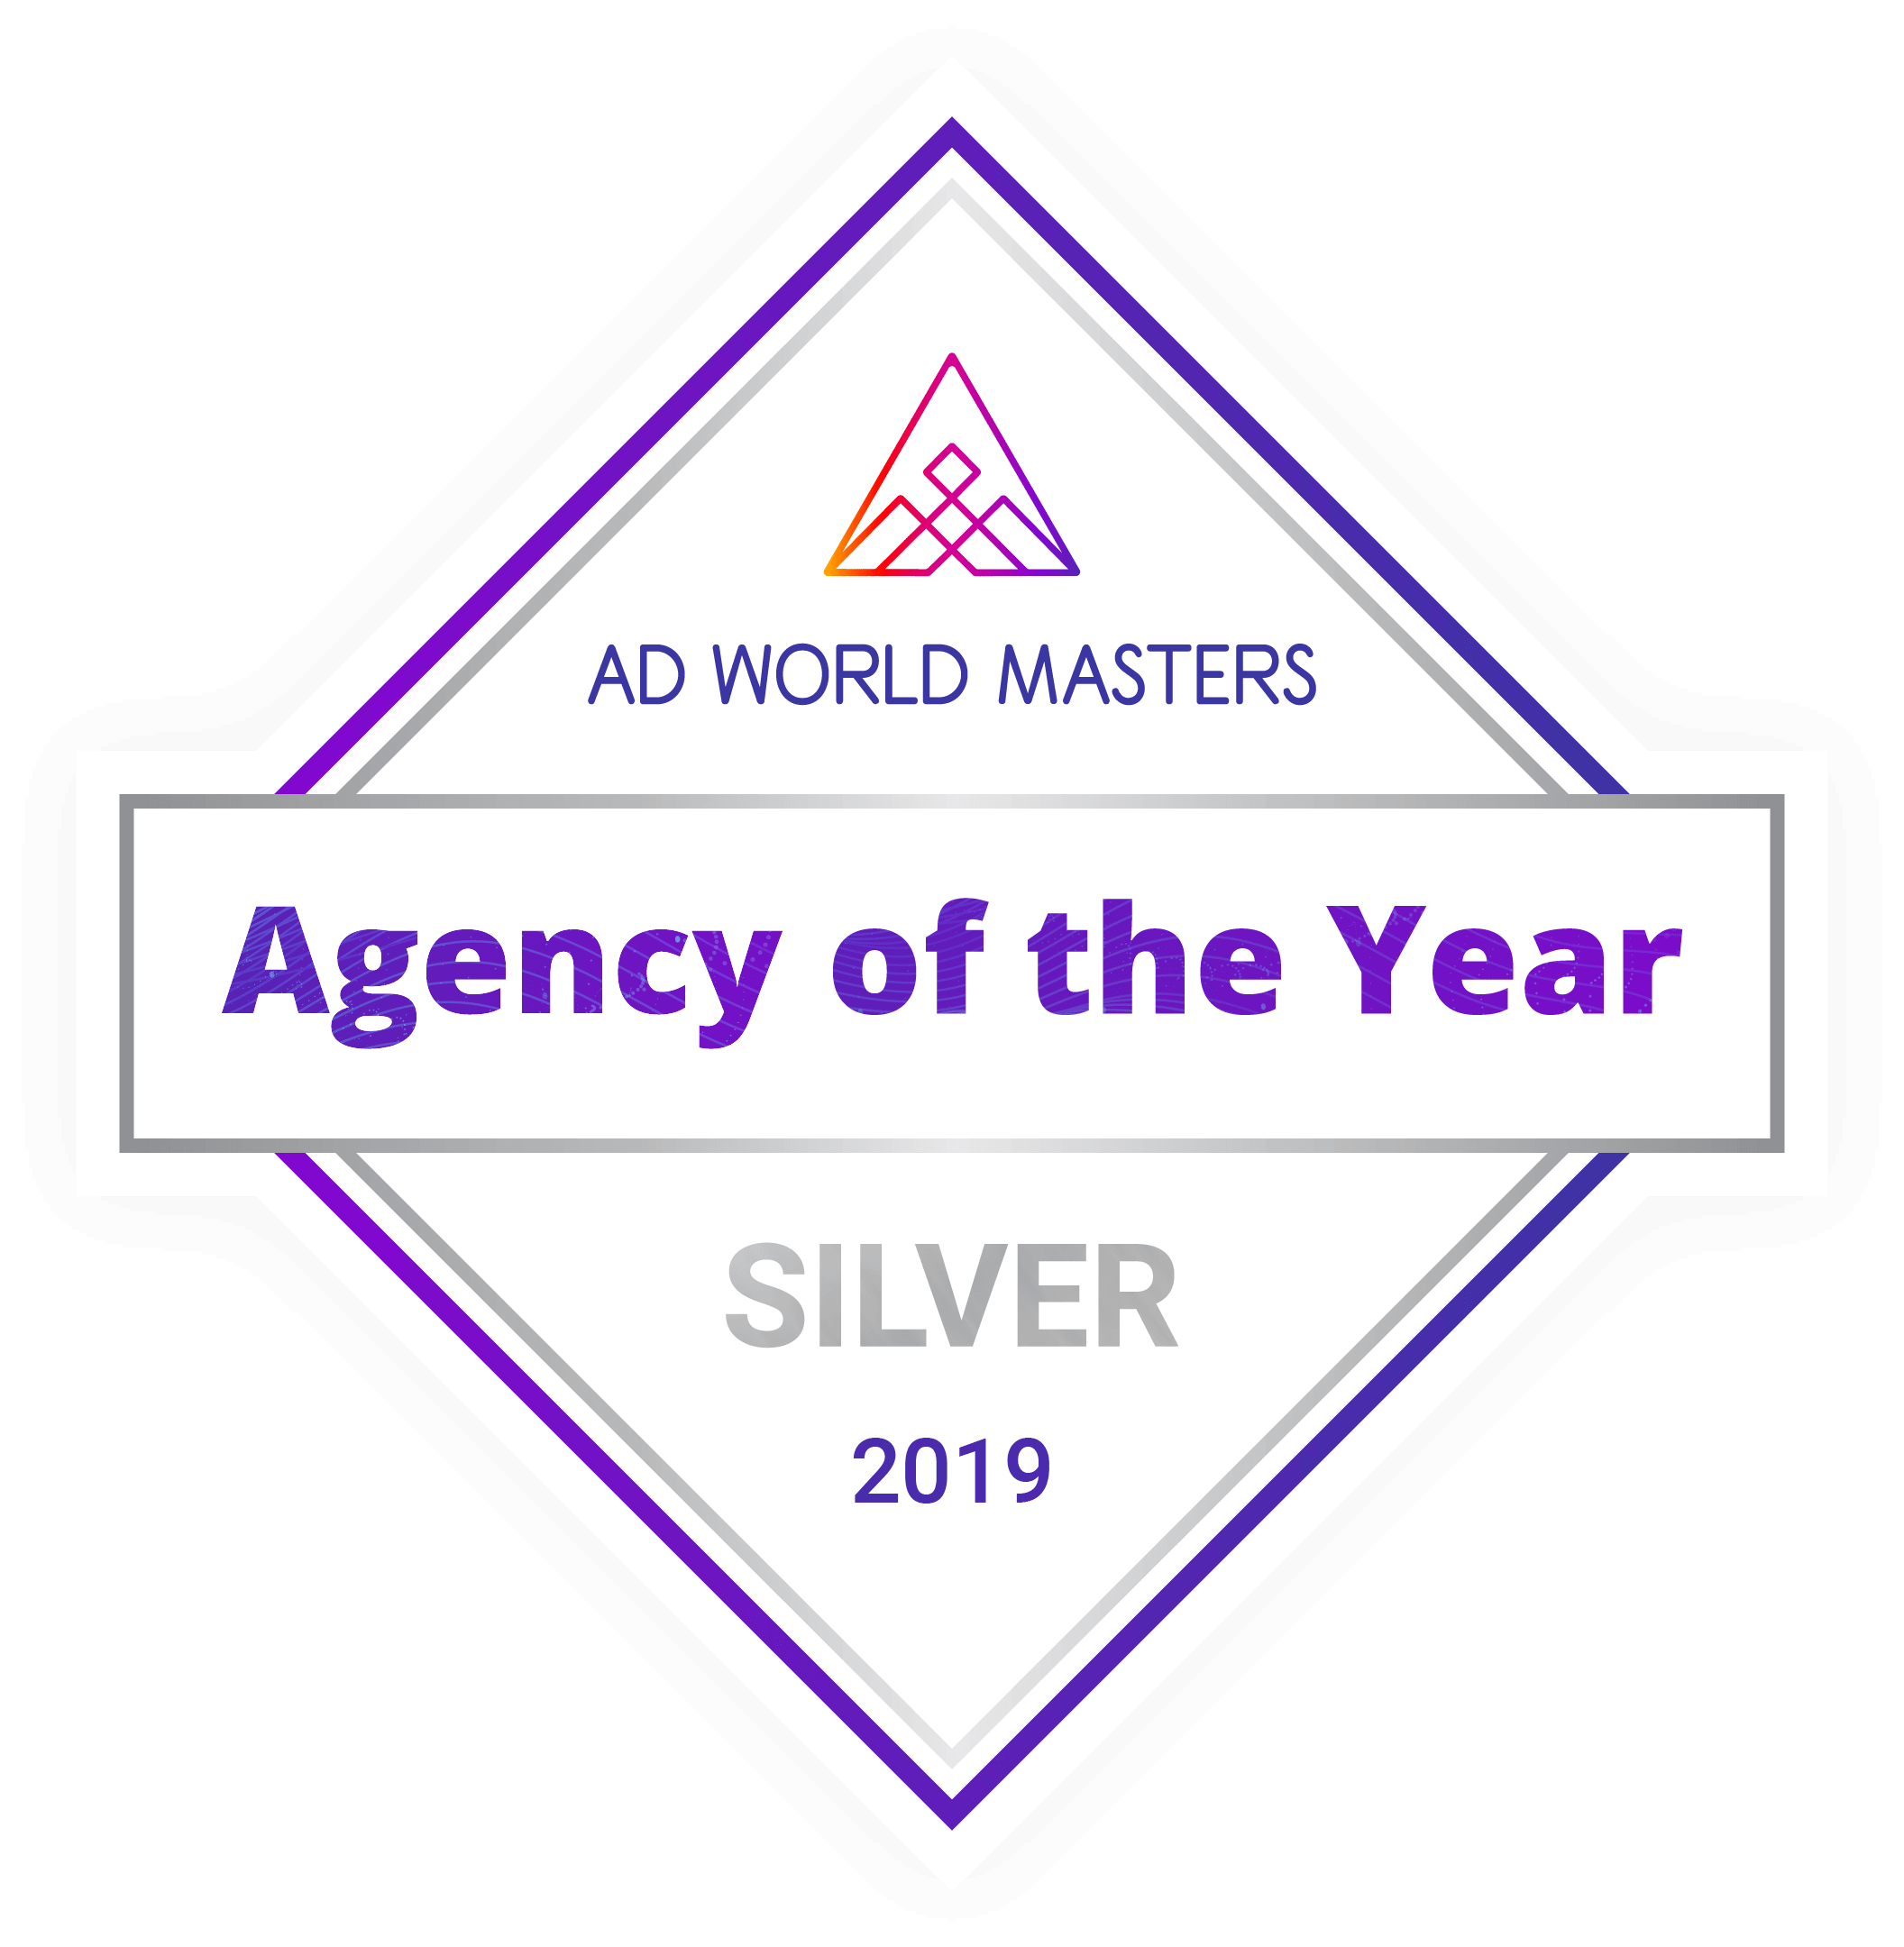 aoty-badge_silver-2019